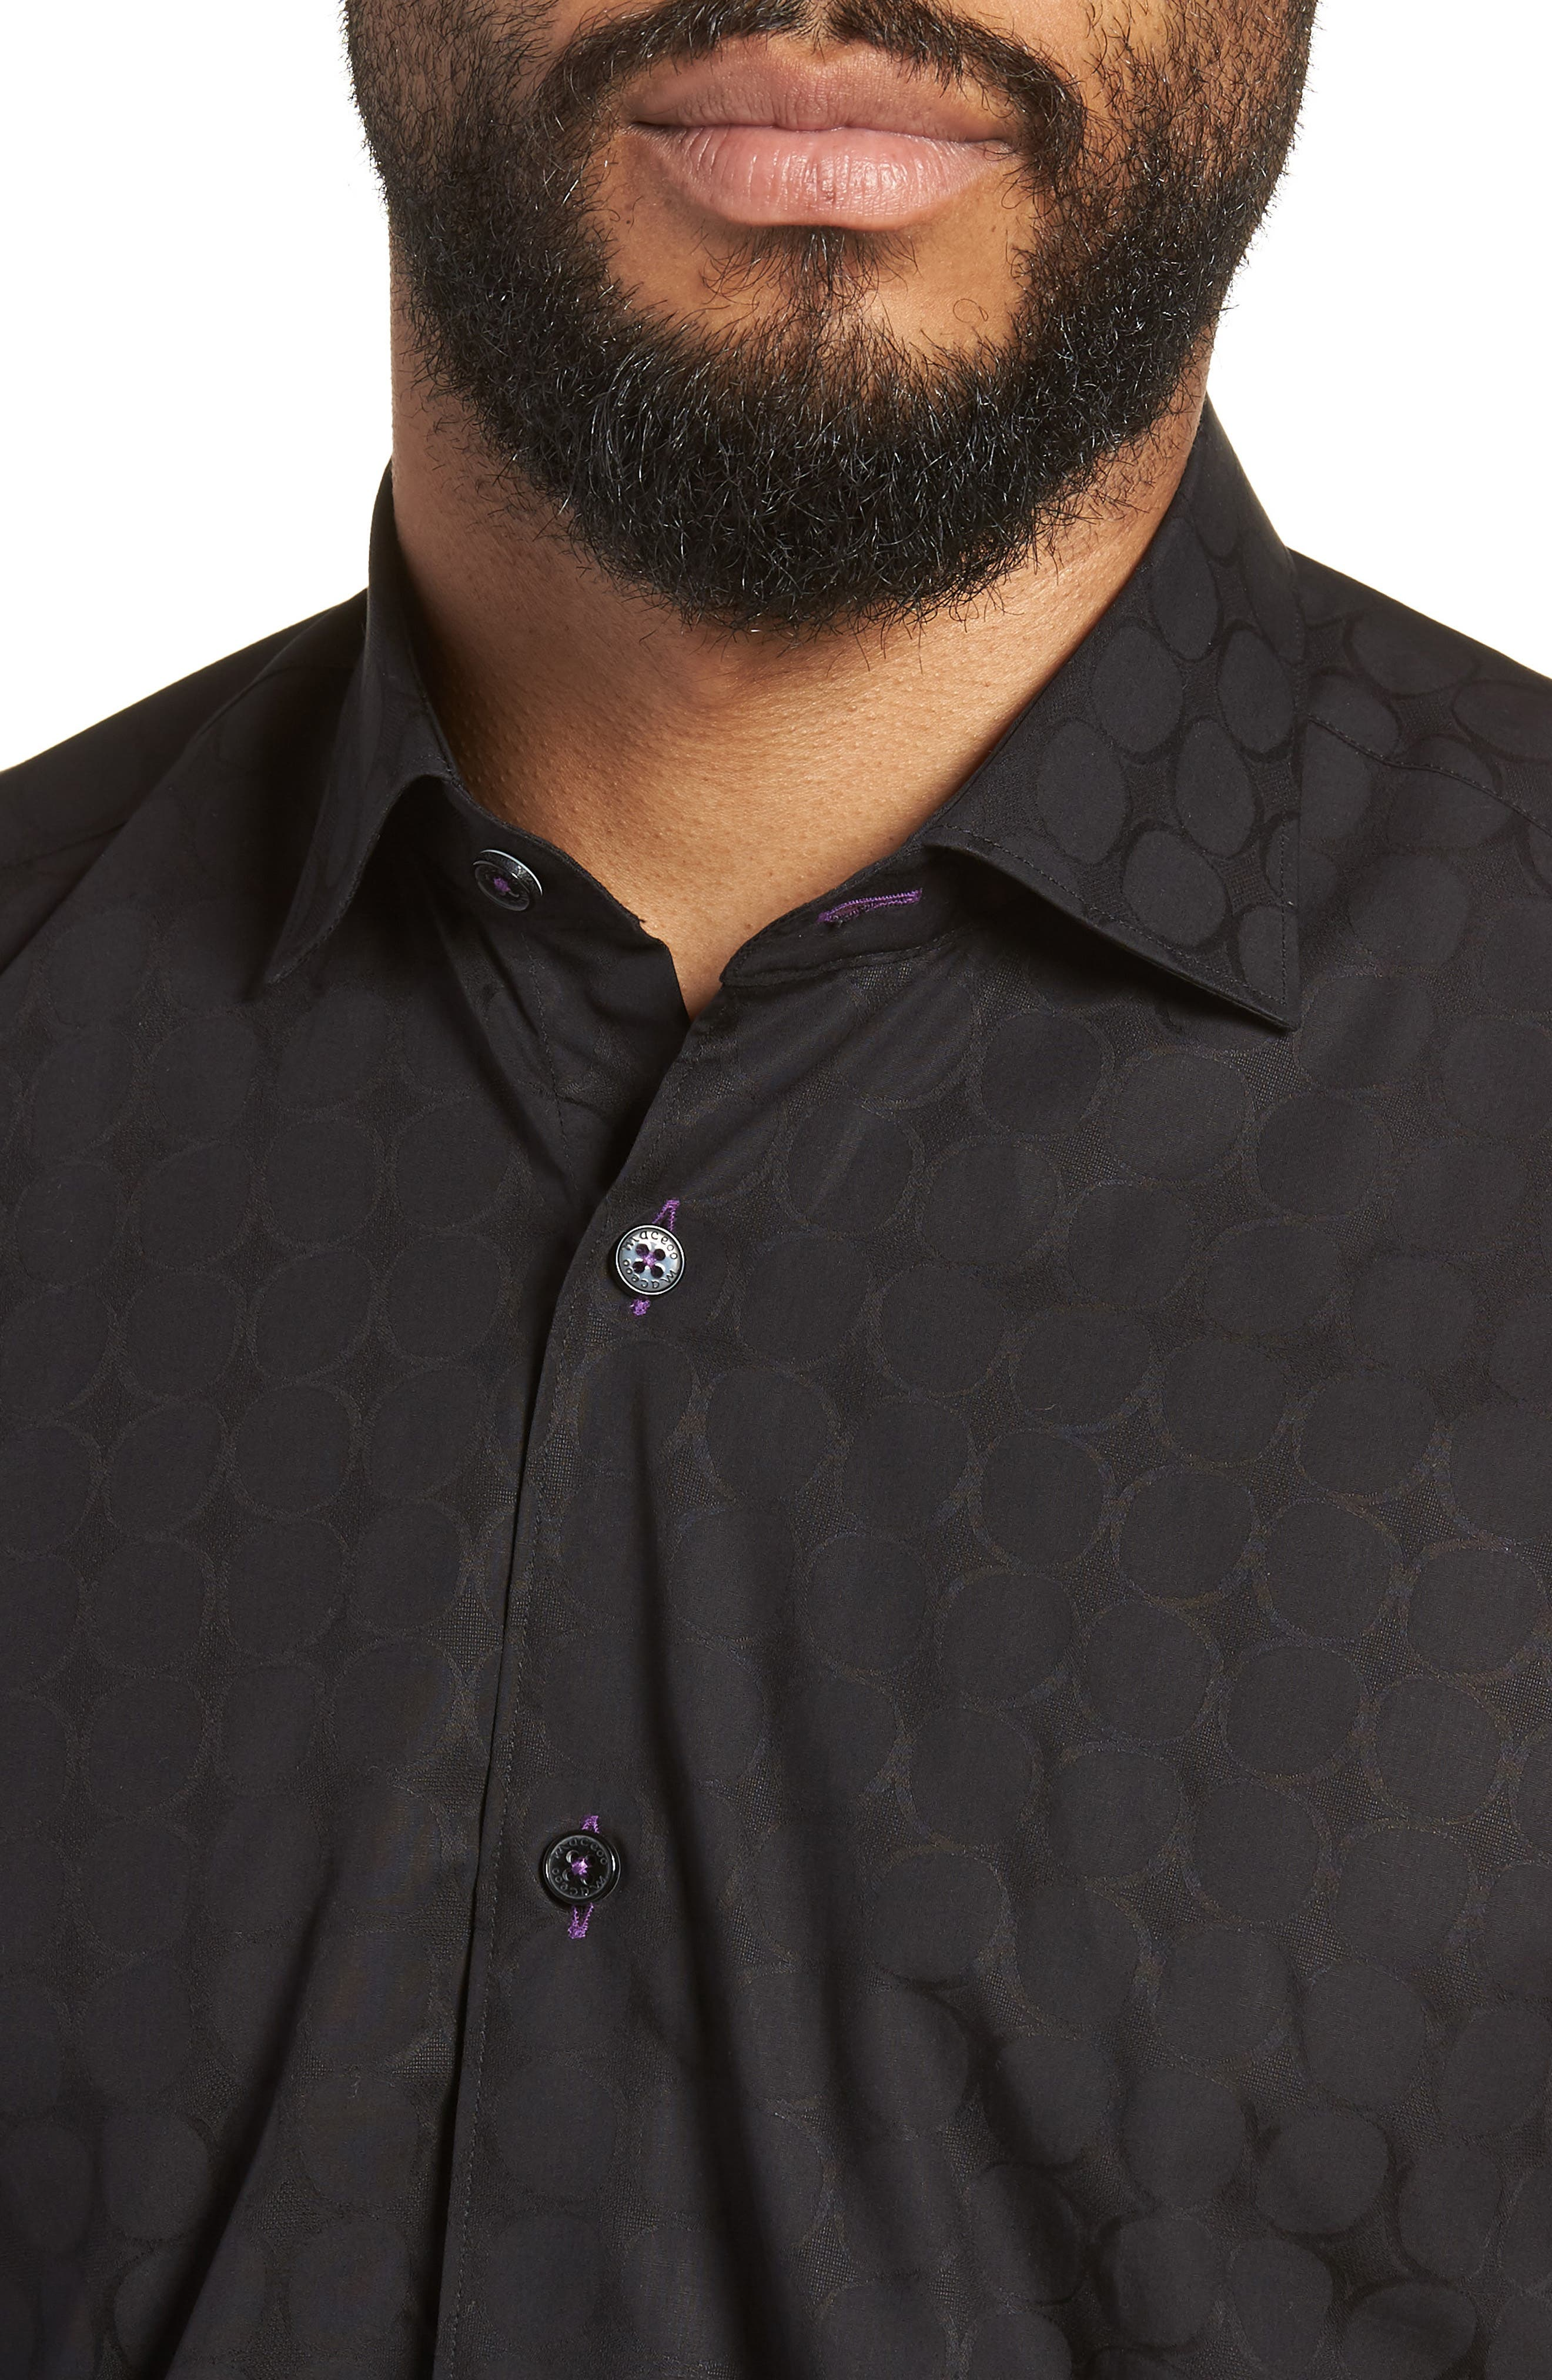 Luxor Bond Sport Shirt,                             Alternate thumbnail 2, color,                             Black